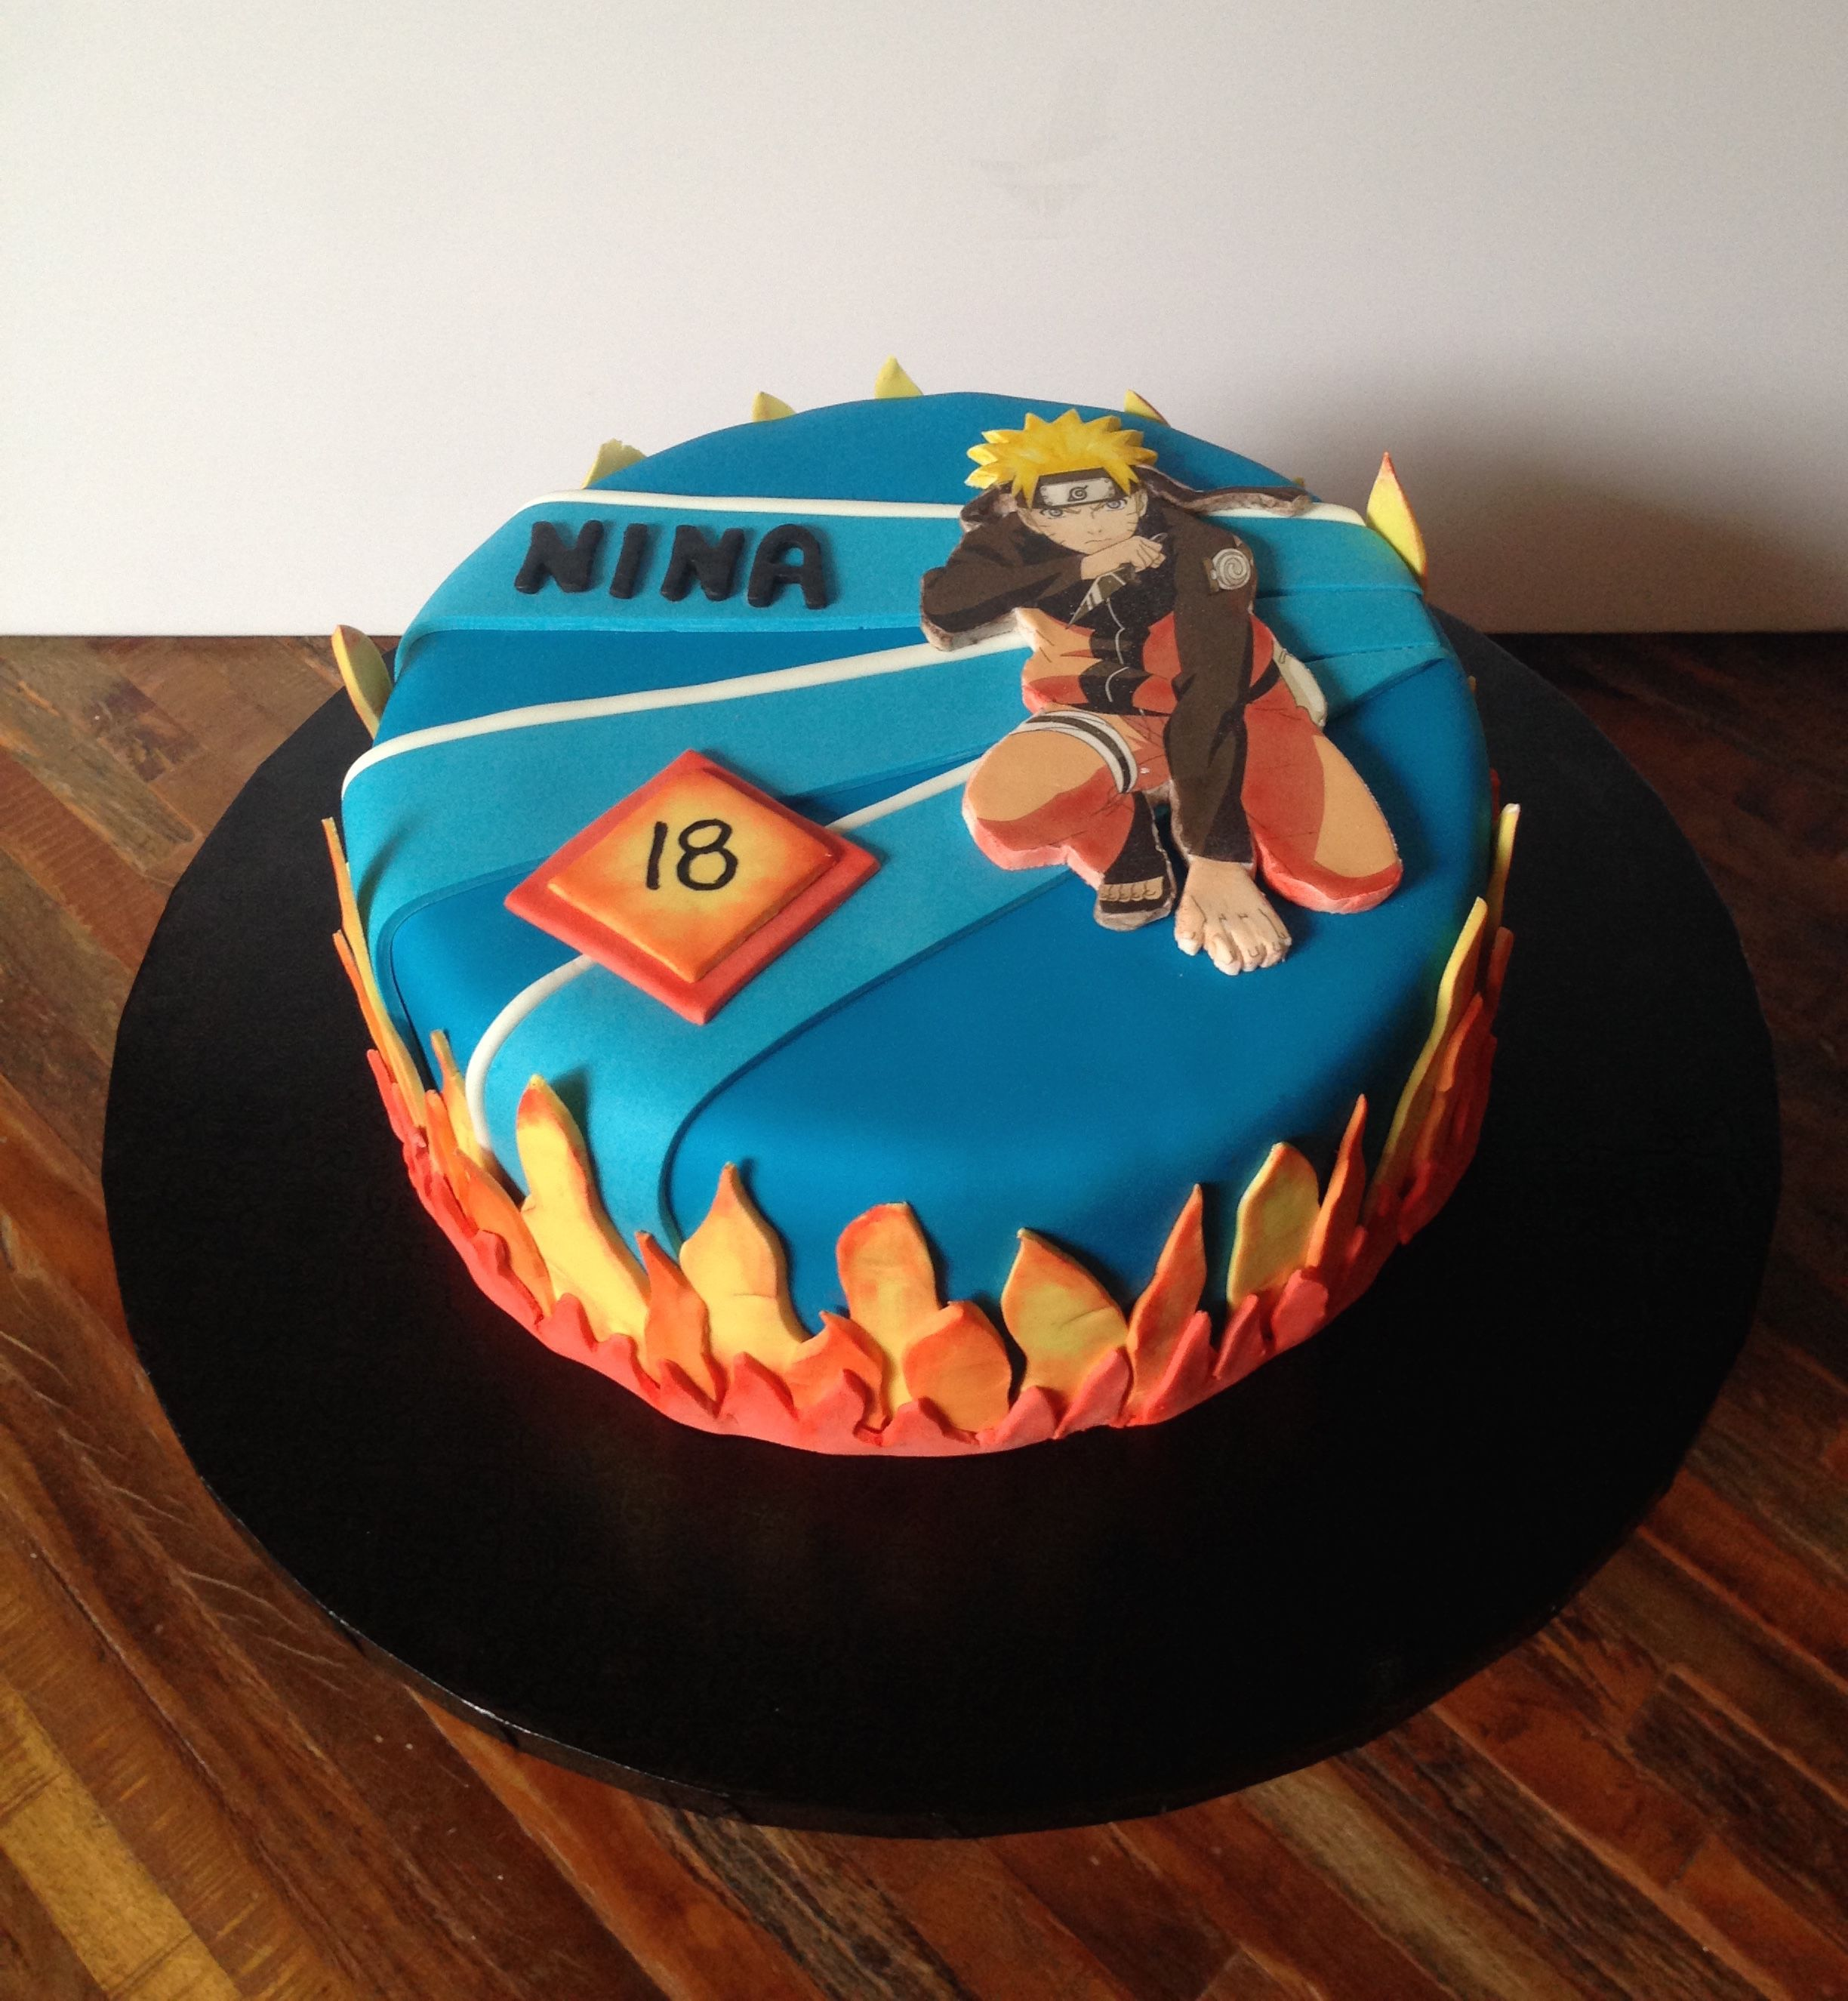 Astounding Naruto Birthday Cake Badass Red Velvet With Chocolate Espresso Personalised Birthday Cards Sponlily Jamesorg